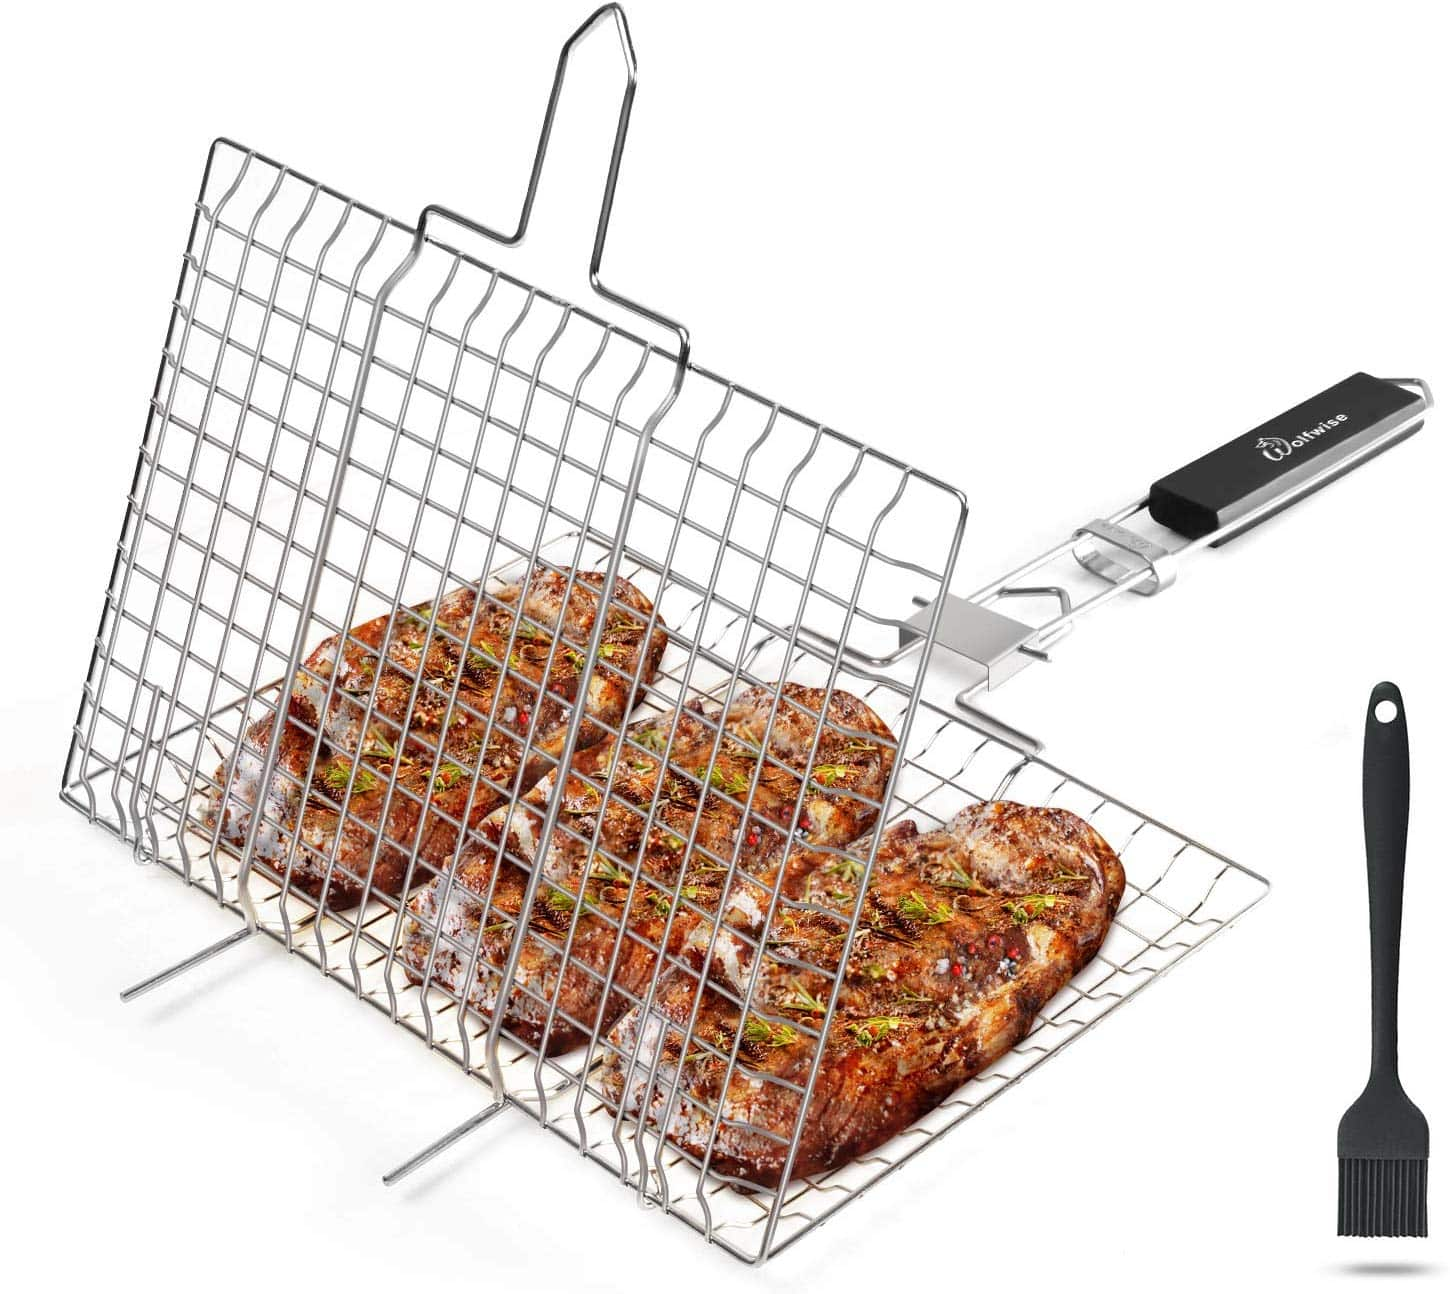 BBQ Grilling Basket with an Additional Basting Brush. 40%OFF! $9.59